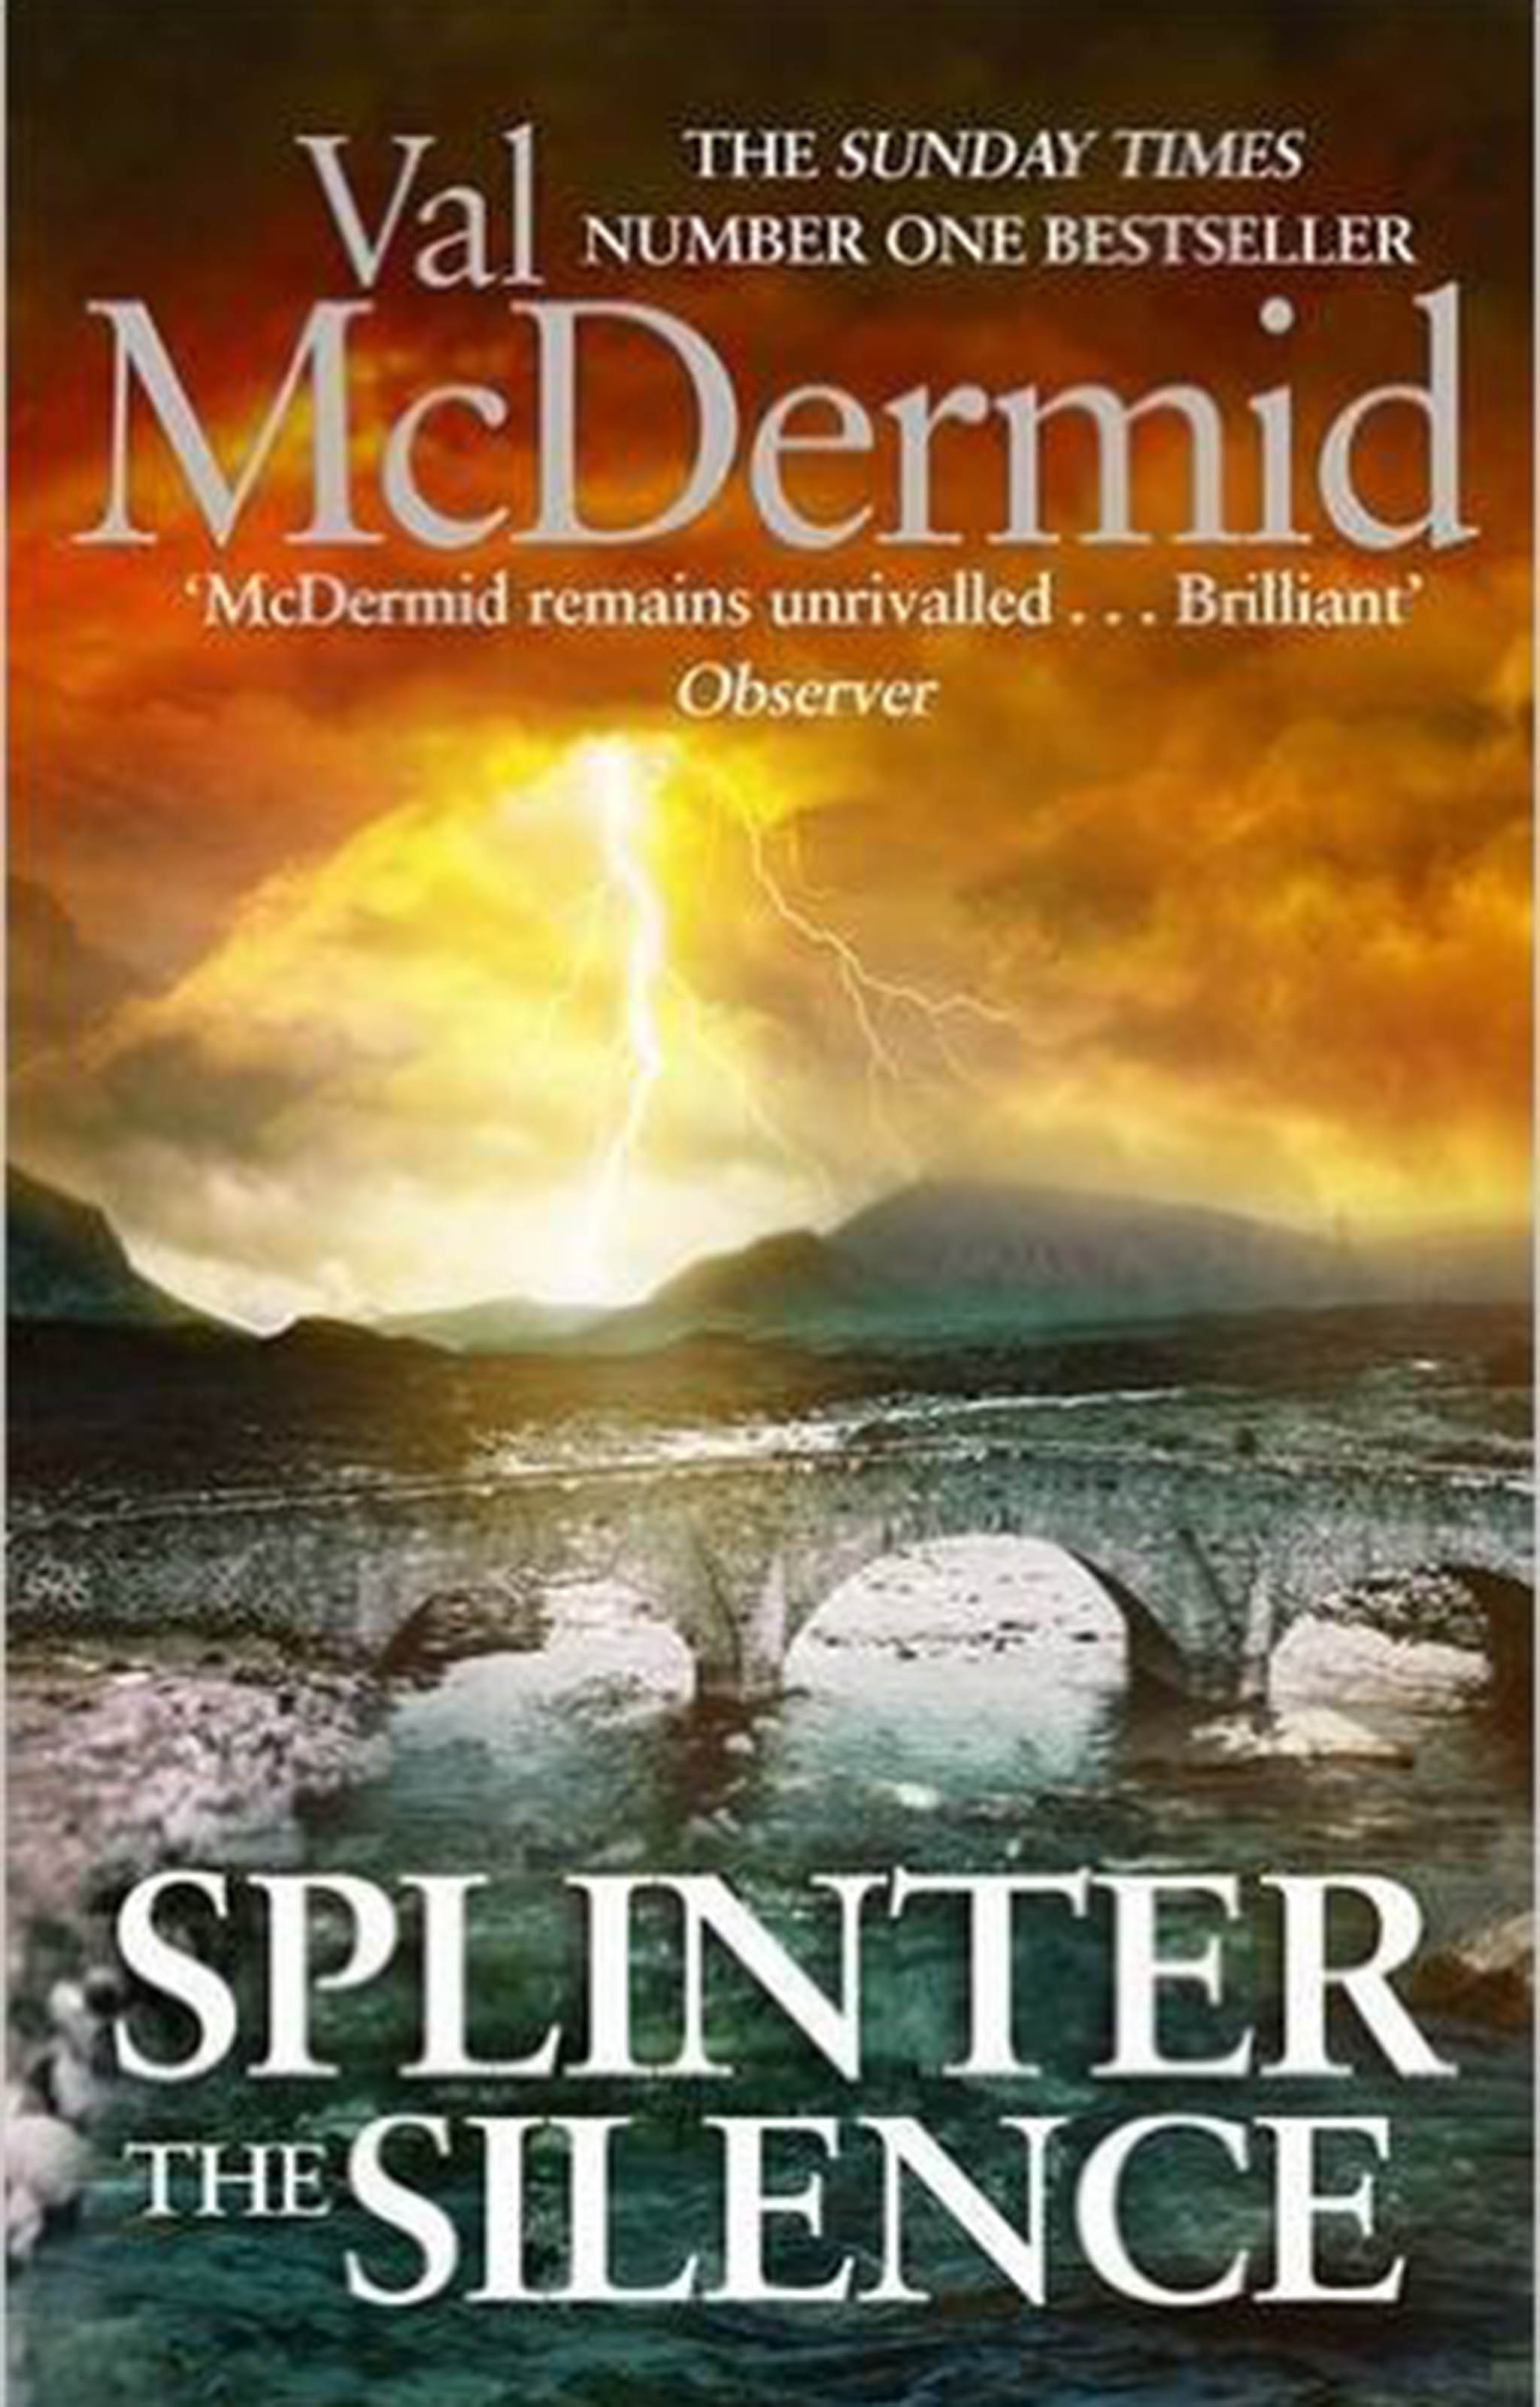 Splinter the Silence by Val McDermid, book review: The ...